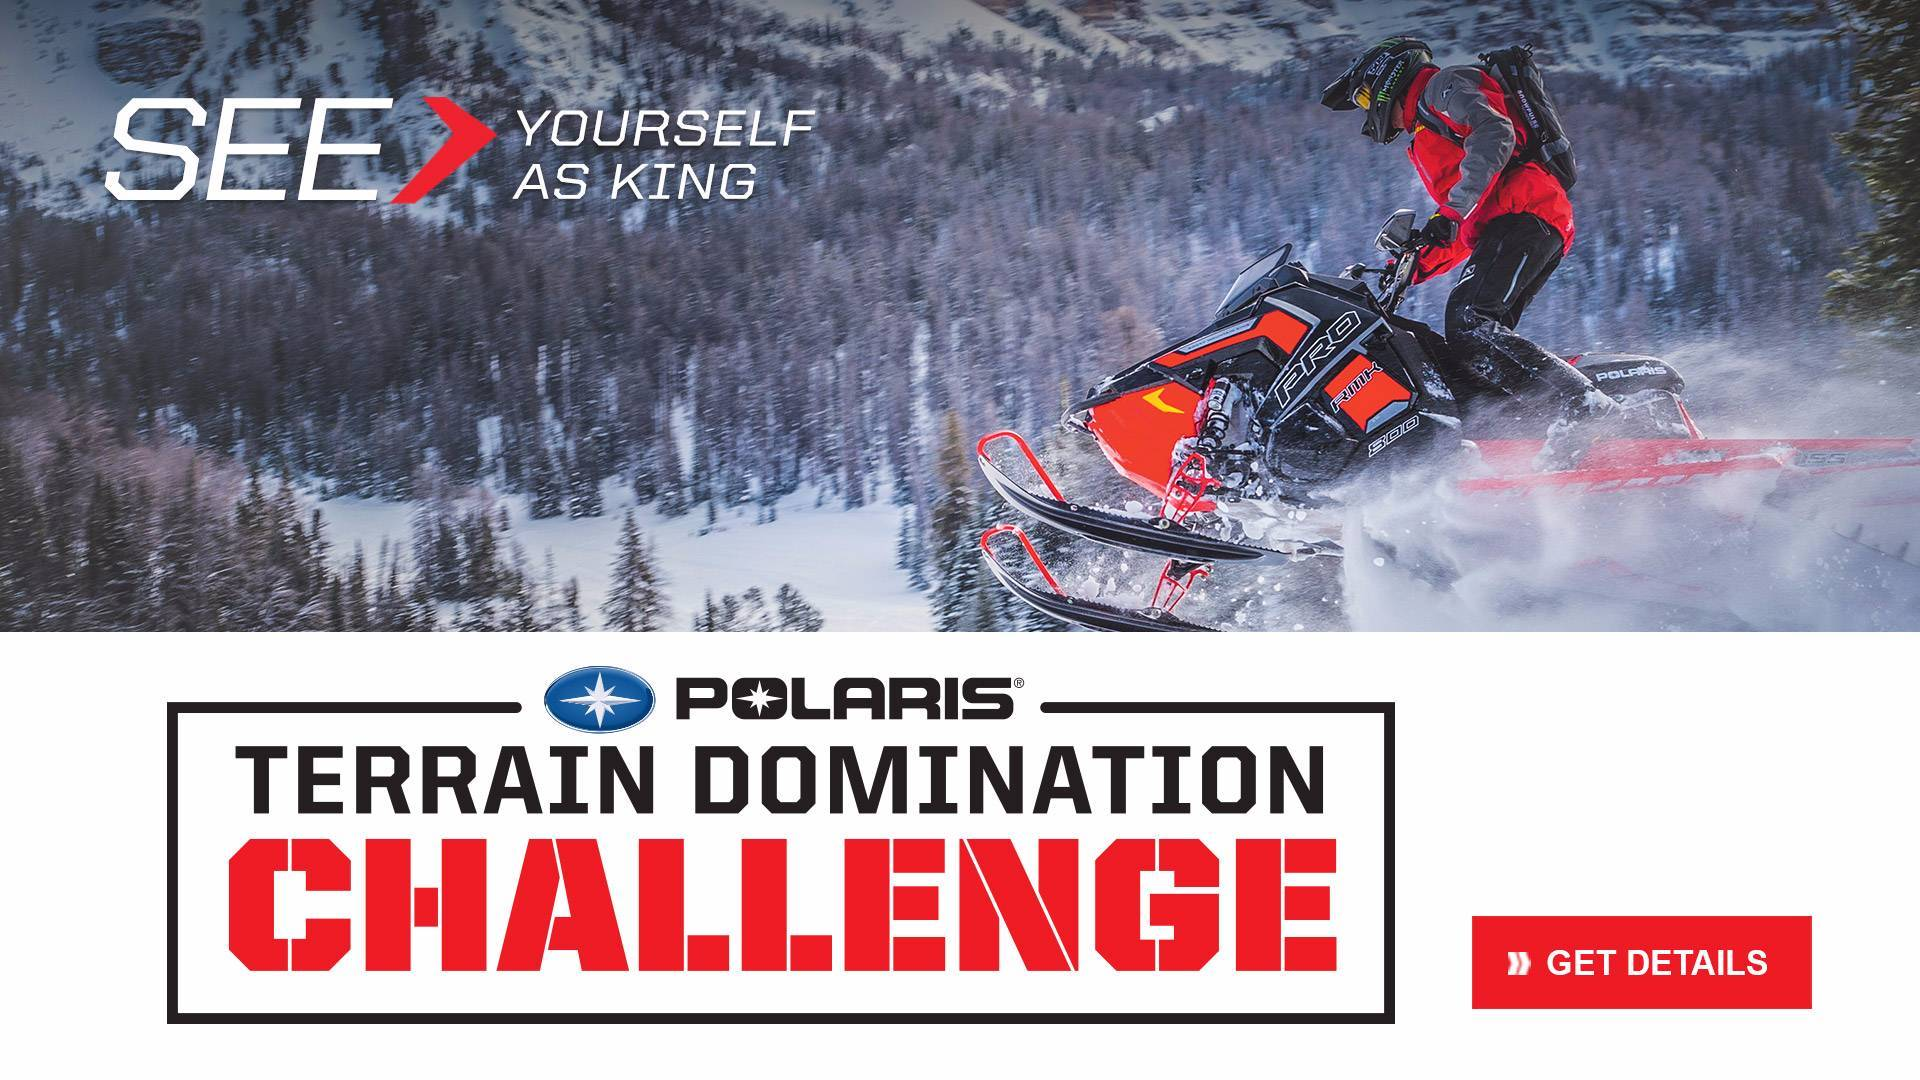 Polaris Terrain Domination Challenge Event